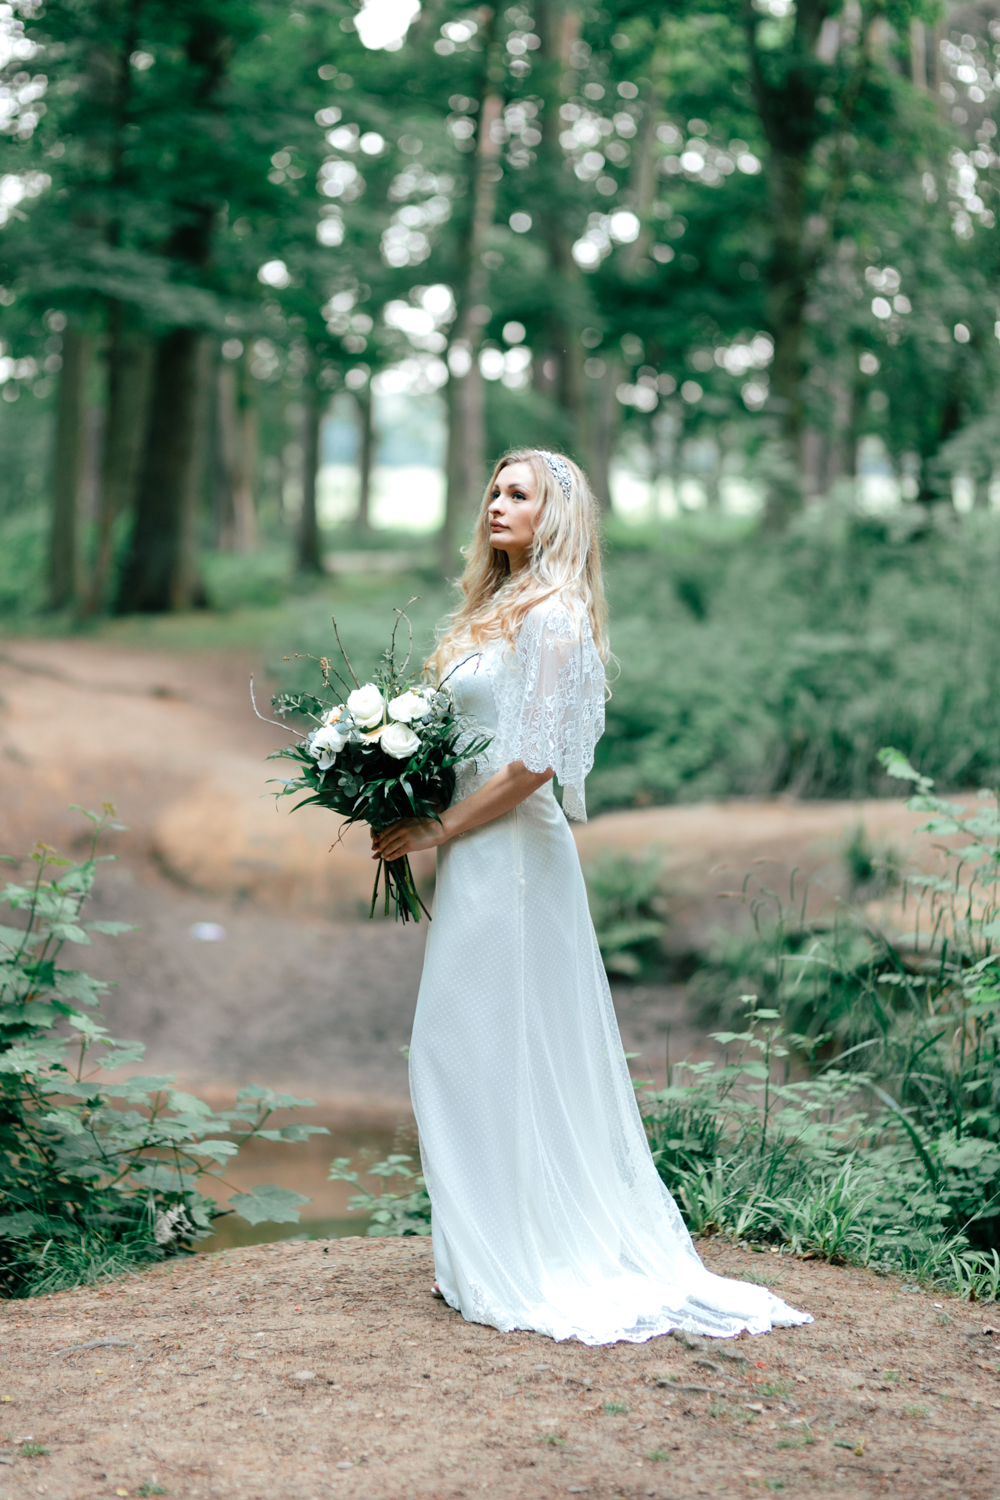 hannahk-photography-bohemian-bridal-inspiration-shoot-2